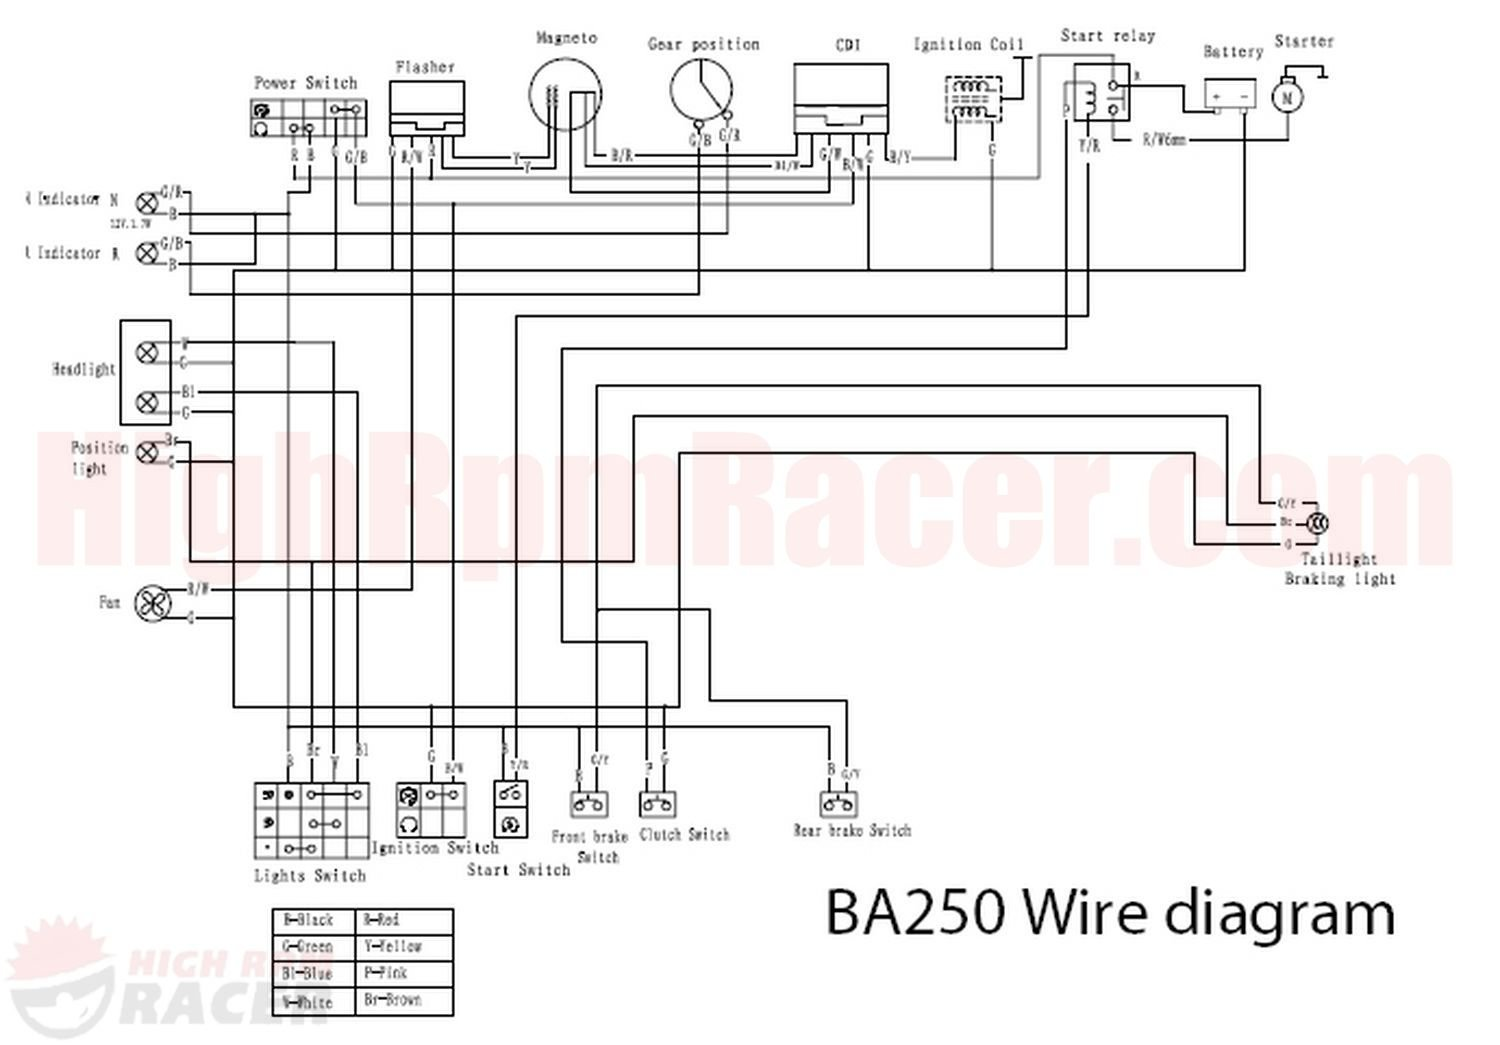 baja250_wd loncin 200cc atv wiring diagram wiring diagram simonand roketa 50cc atv wiring diagram at aneh.co